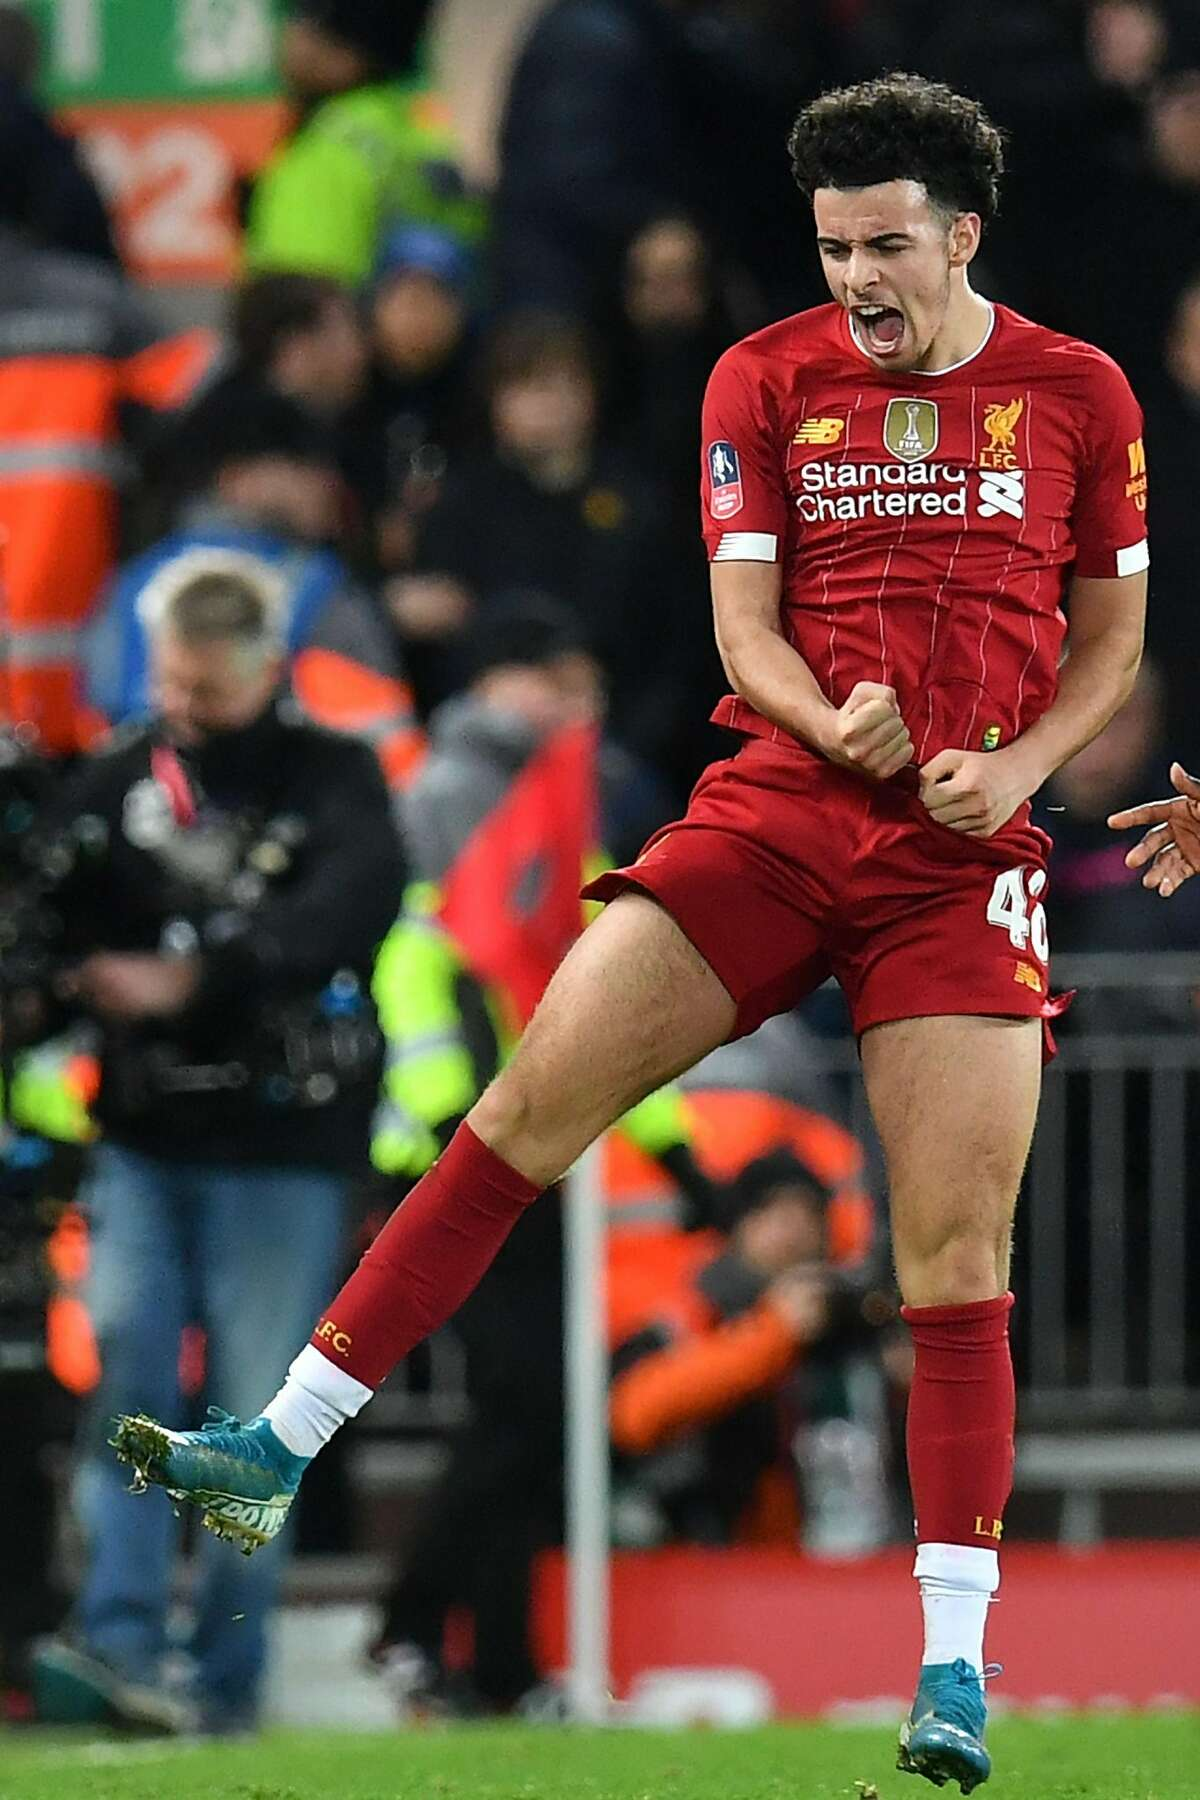 Liverpool's English midfielder Curtis Jones celebrates after scoring the opening goal of the English FA Cup third round football match between Liverpool and Everton at Anfield in Liverpool, north west England on January 5, 2020. (Photo by Paul ELLIS / AFP) / RESTRICTED TO EDITORIAL USE. No use with unauthorized audio, video, data, fixture lists, club/league logos or 'live' services. Online in-match use limited to 120 images. An additional 40 images may be used in extra time. No video emulation. Social media in-match use limited to 120 images. An additional 40 images may be used in extra time. No use in betting publications, games or single club/league/player publications. / (Photo by PAUL ELLIS/AFP via Getty Images)